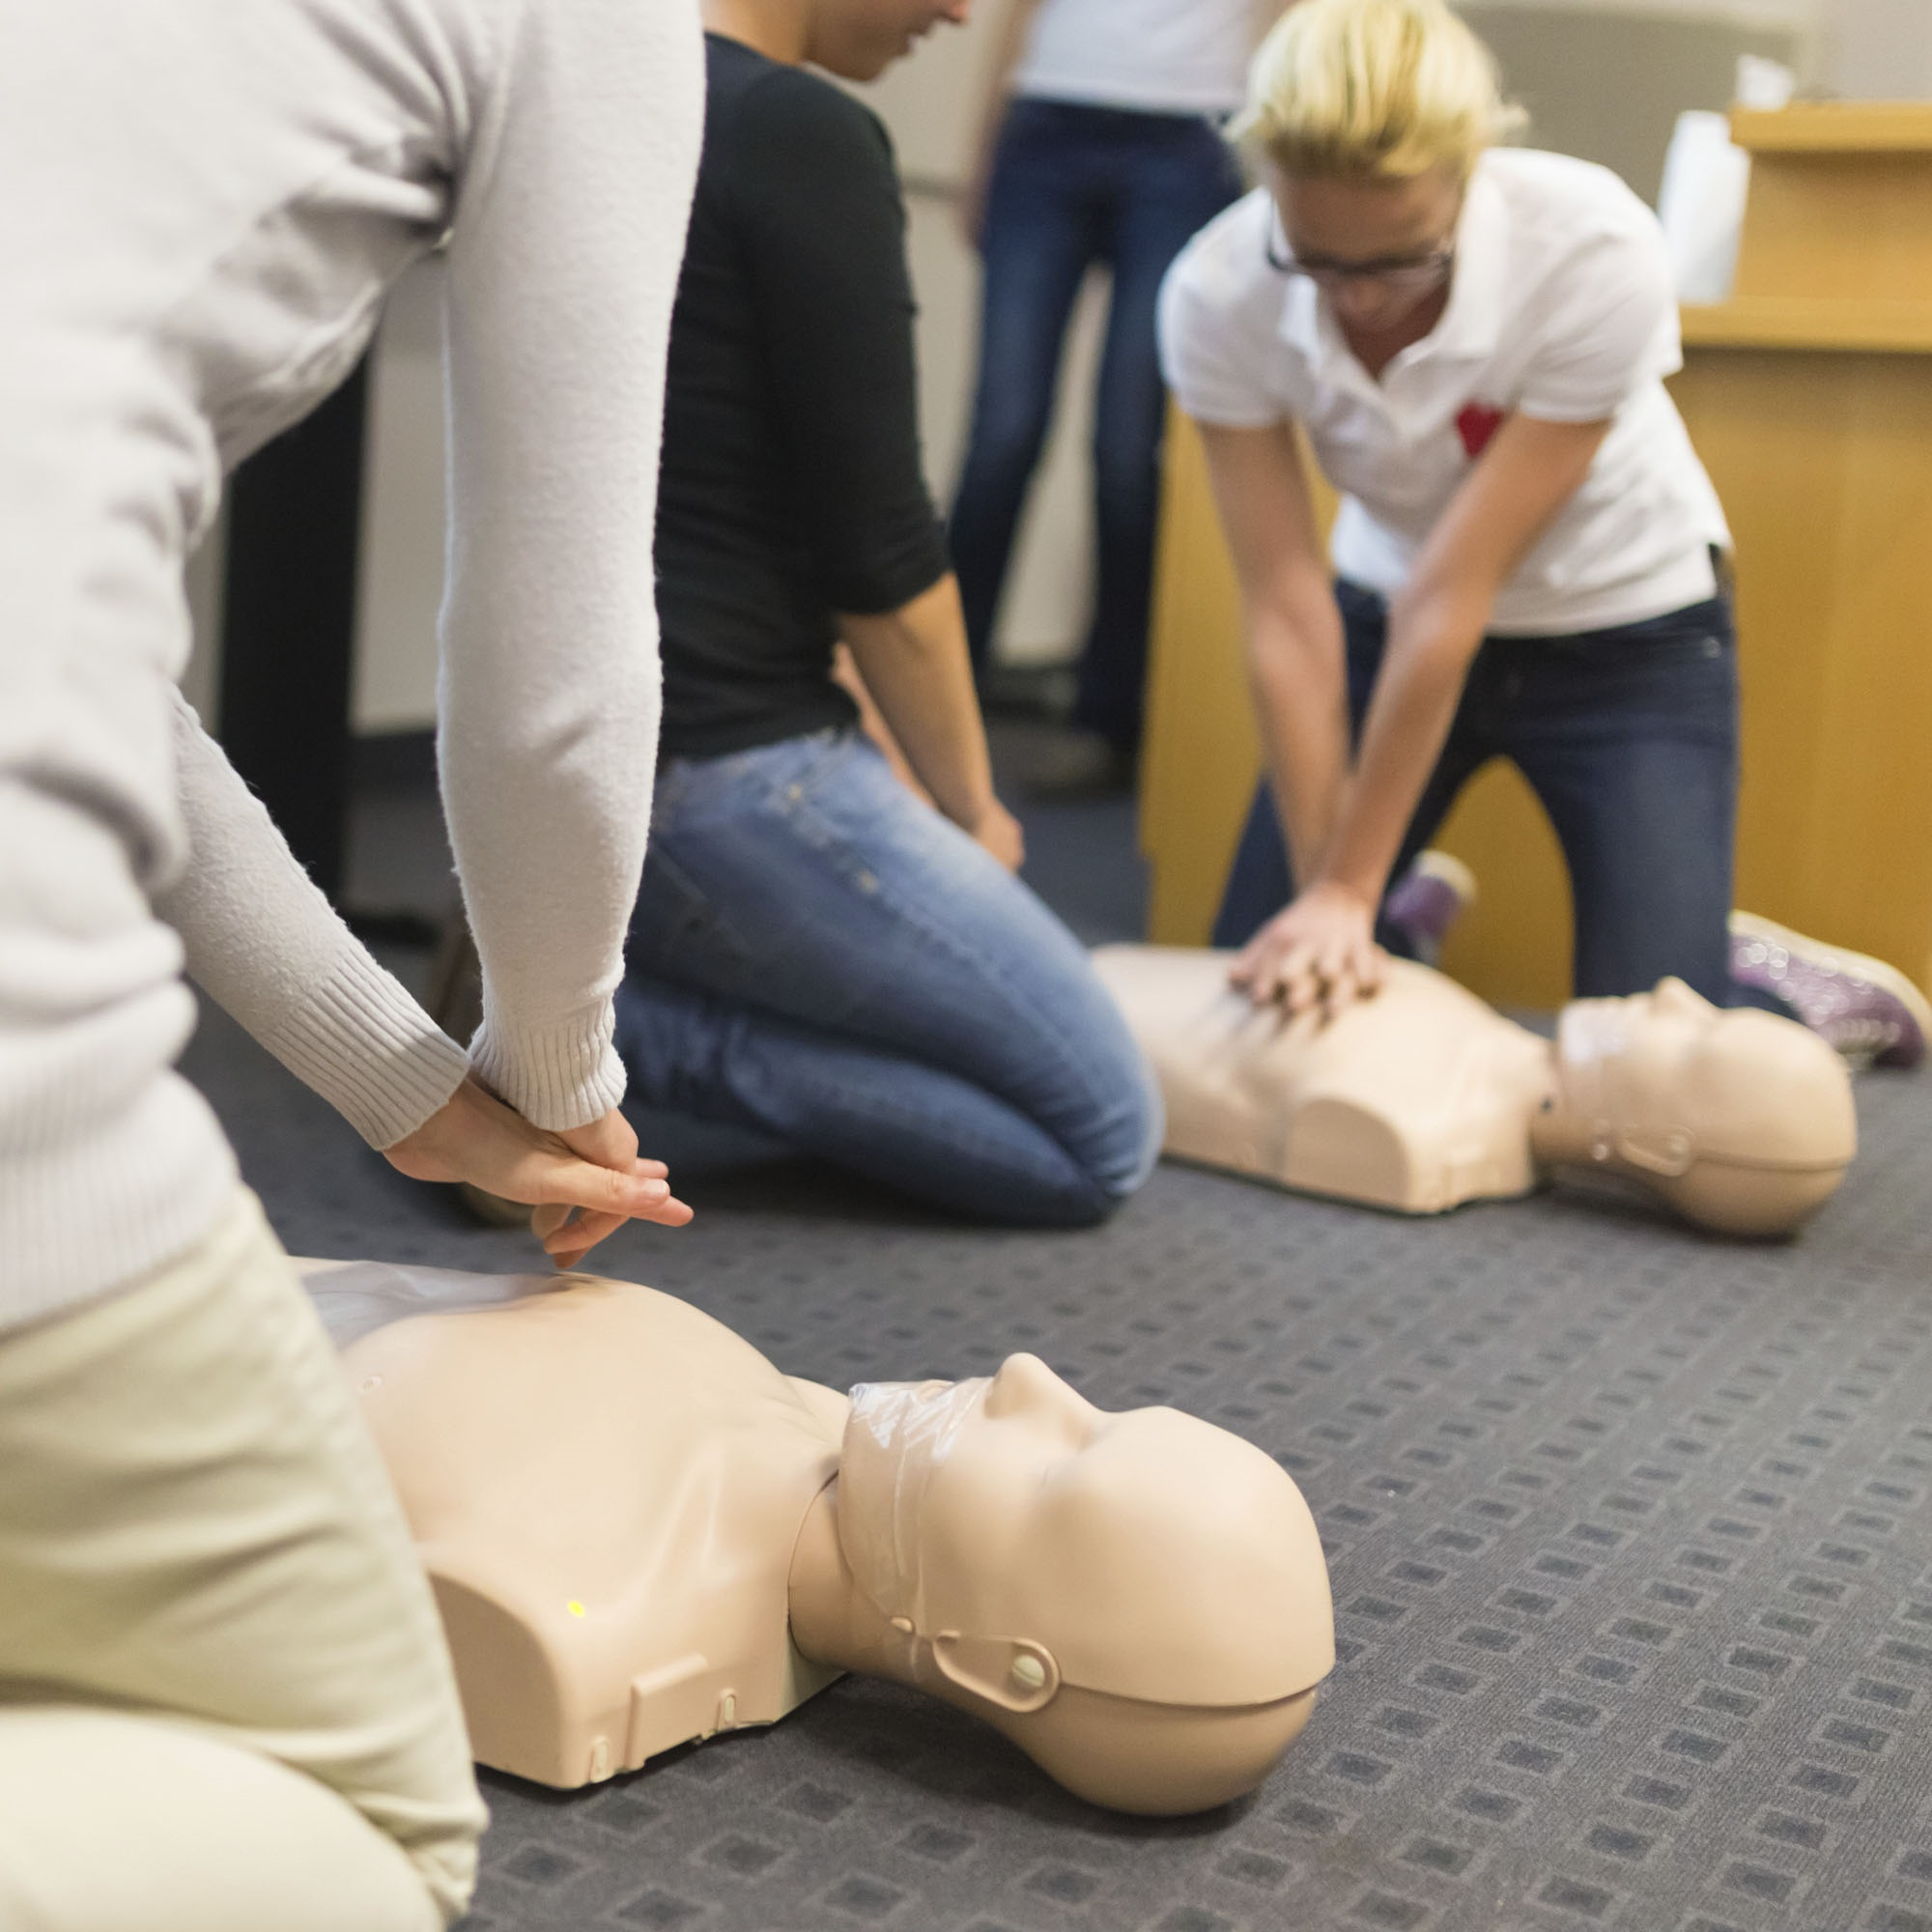 Two women practice CPR chest compressions on dummies while one person watches. The dummies lie on a carpet with a square-checked pattern. Another person stands in the background.